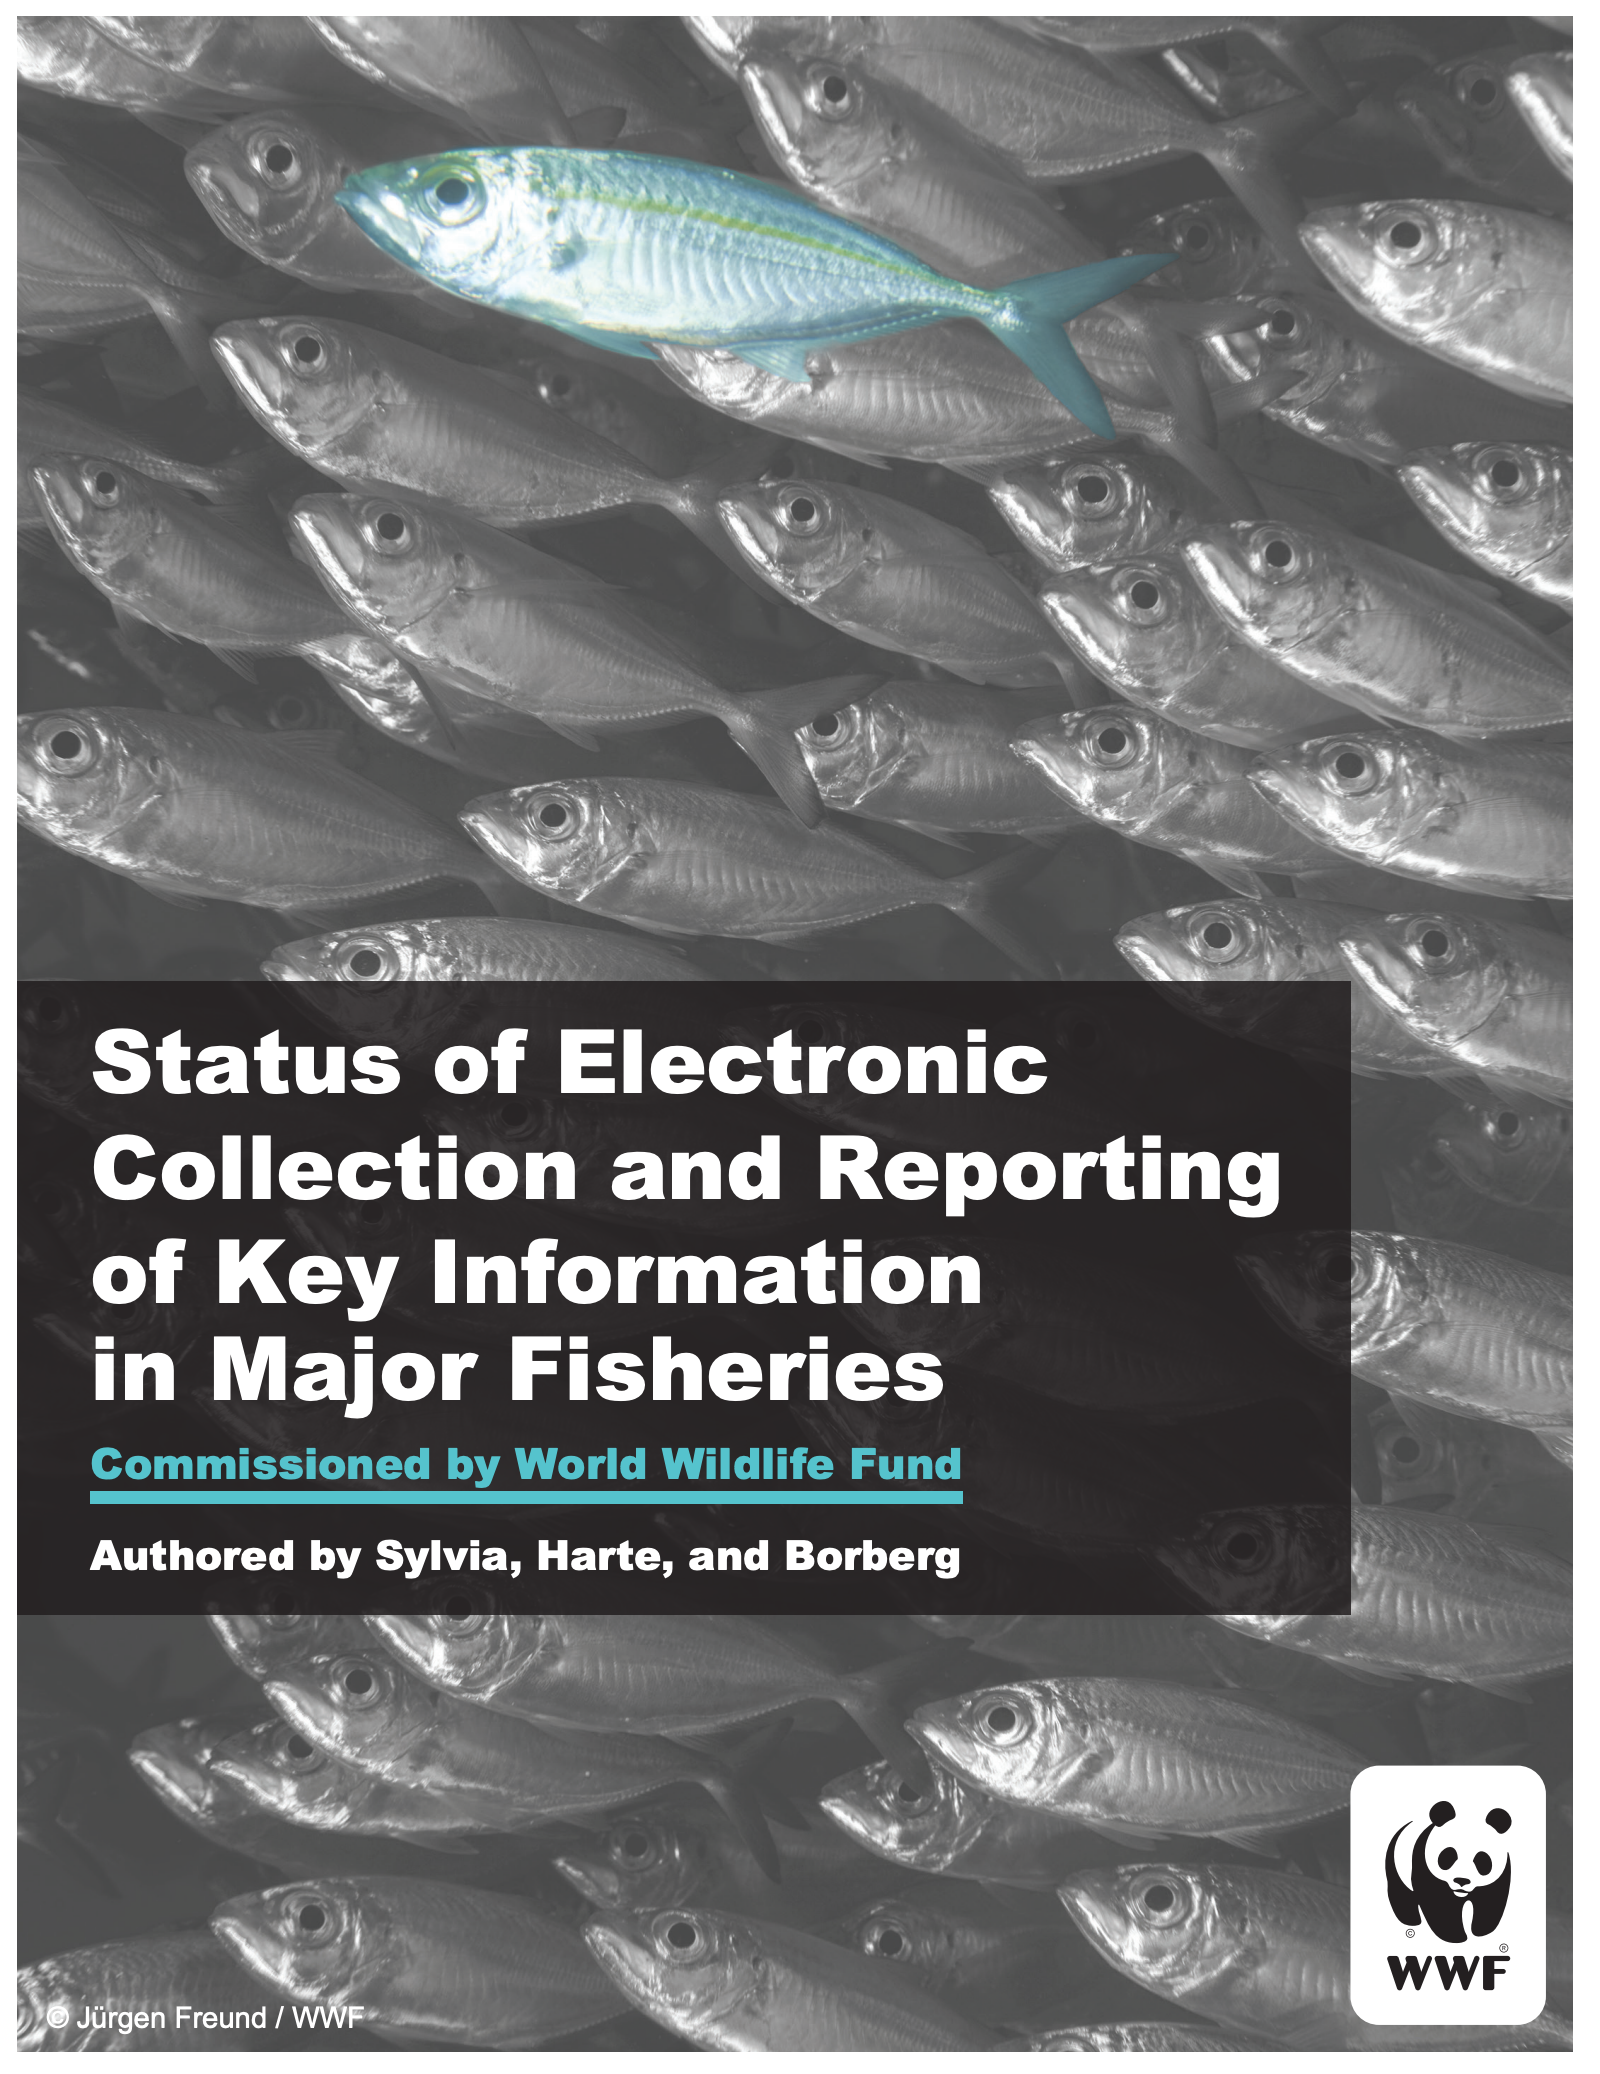 Status of Electronic Collection and Reporting of Key Information in Major Fisheries